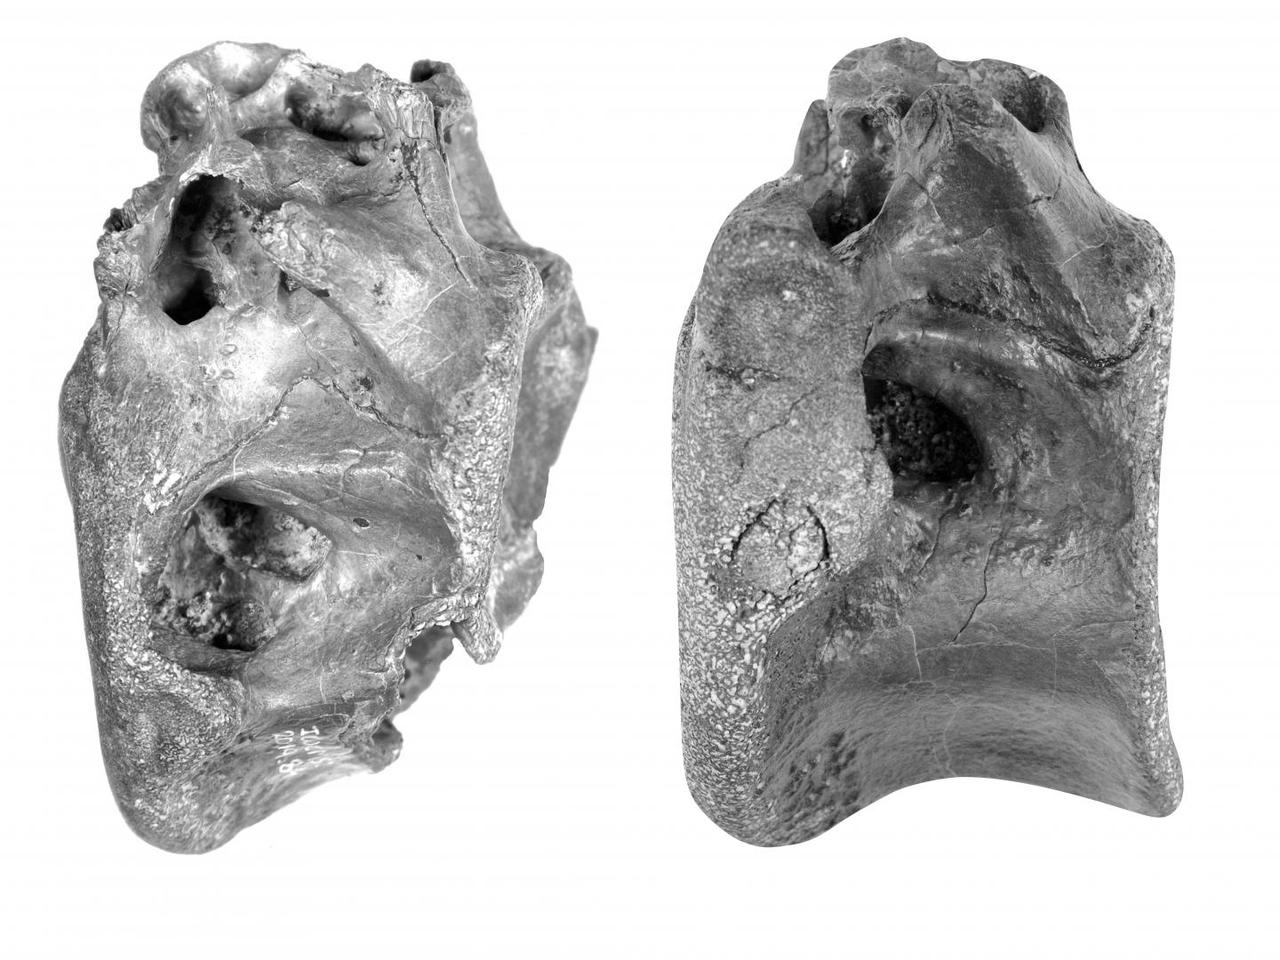 Two of the four vertebrae